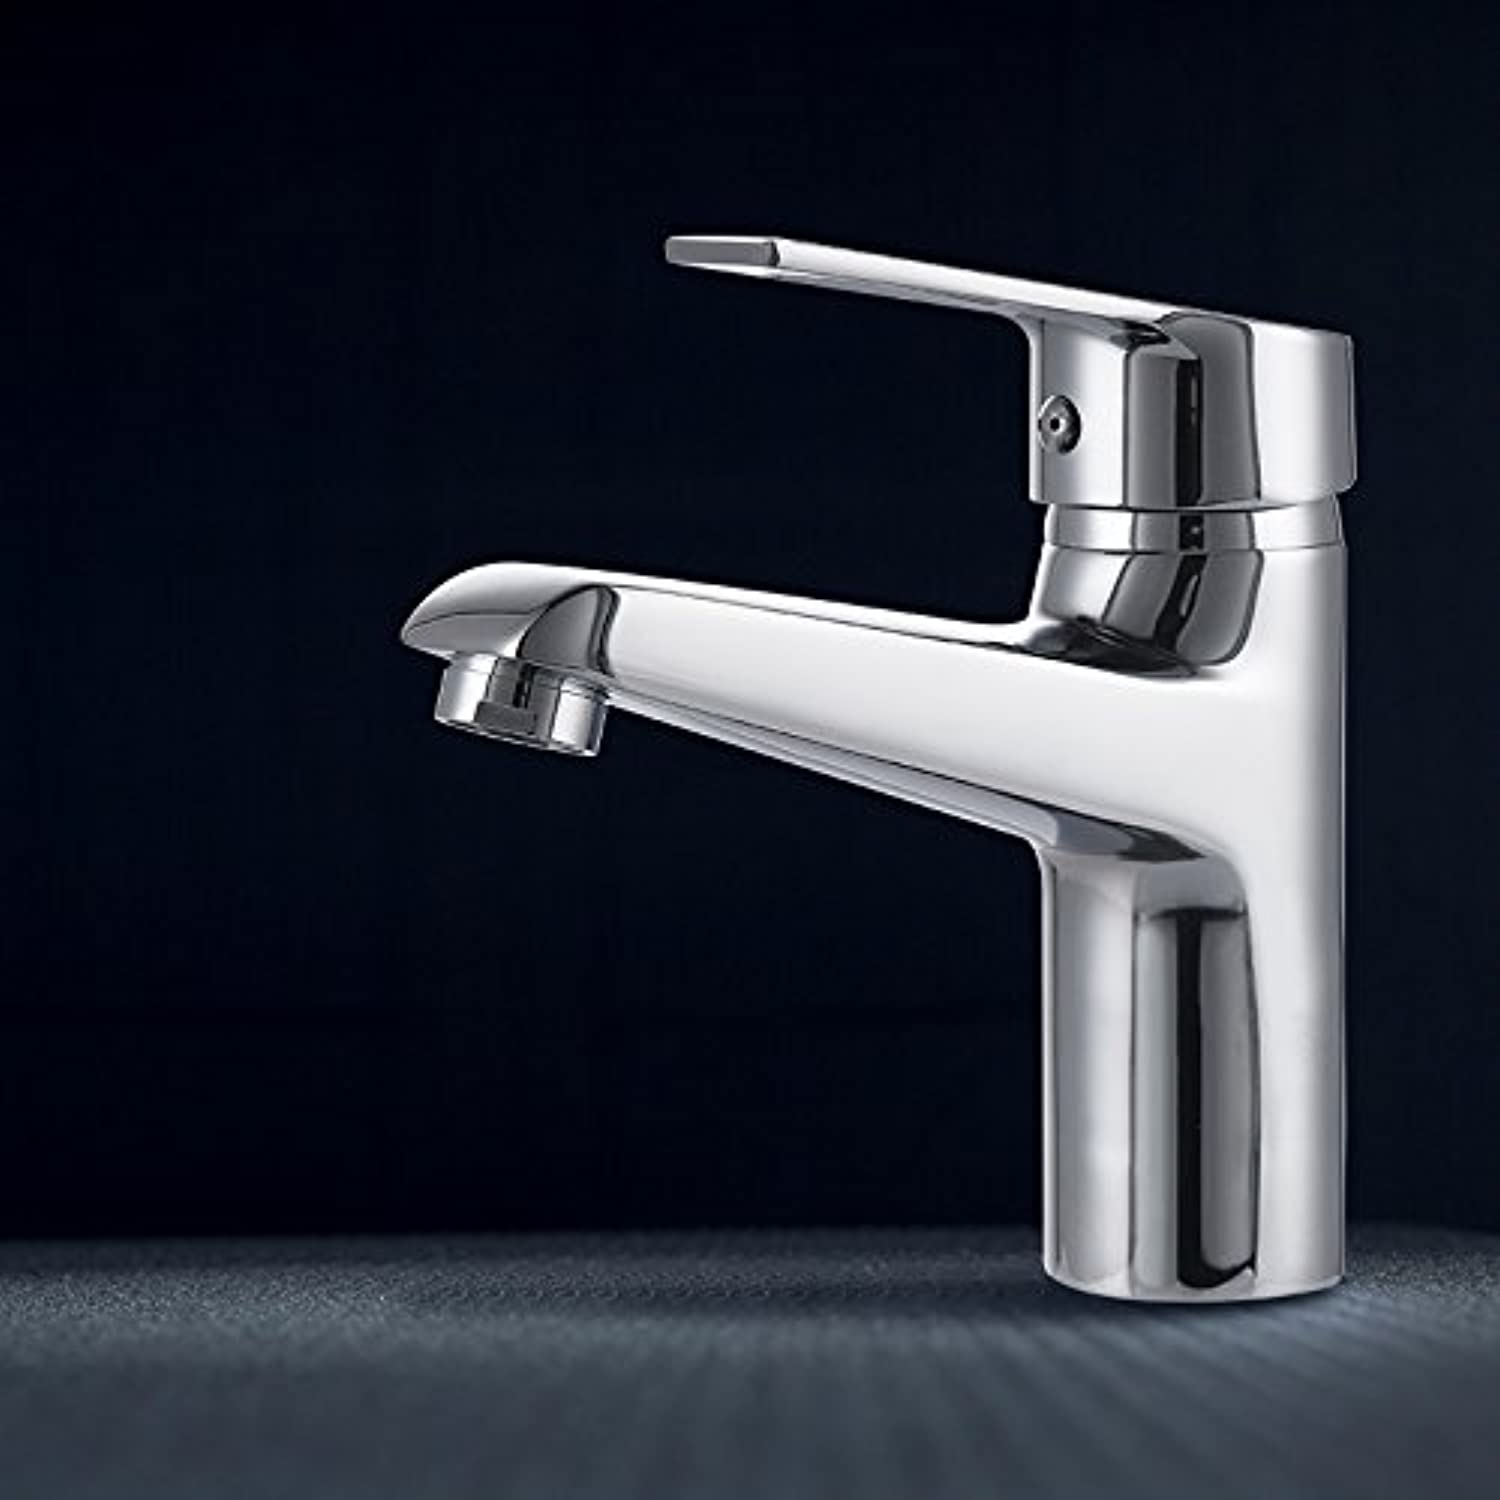 Hlluya Professional Sink Mixer Tap Kitchen Faucet The bronze basin mixer single lever single hole Washbasin Faucet with hot cold running water.